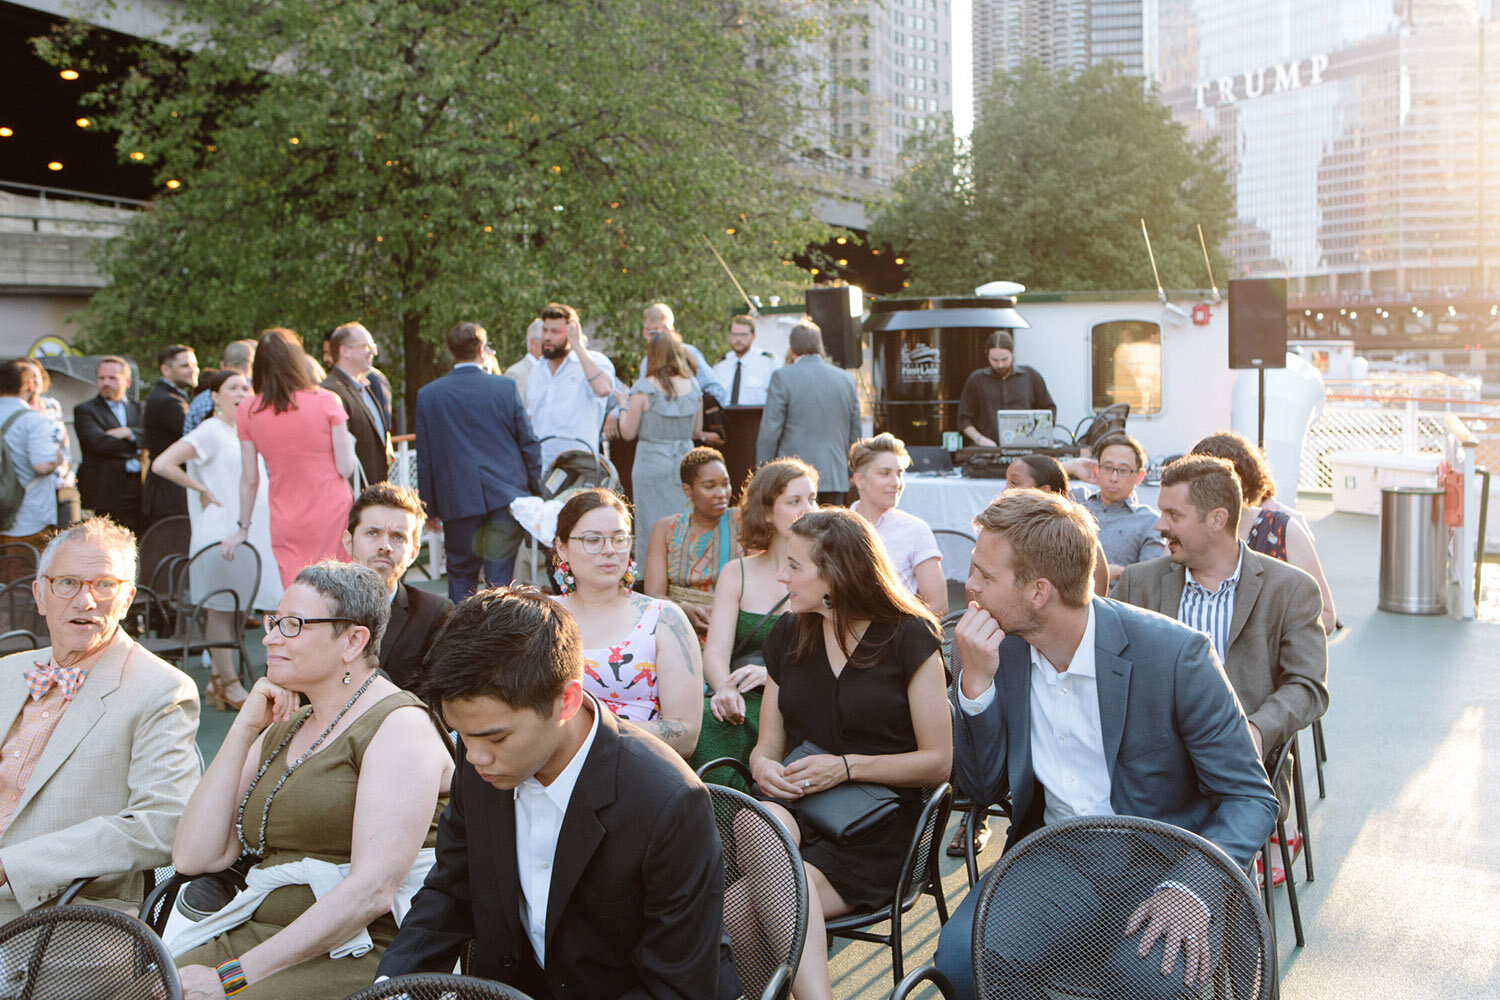 downtown-chicago-boat-wedding-guests.jpg